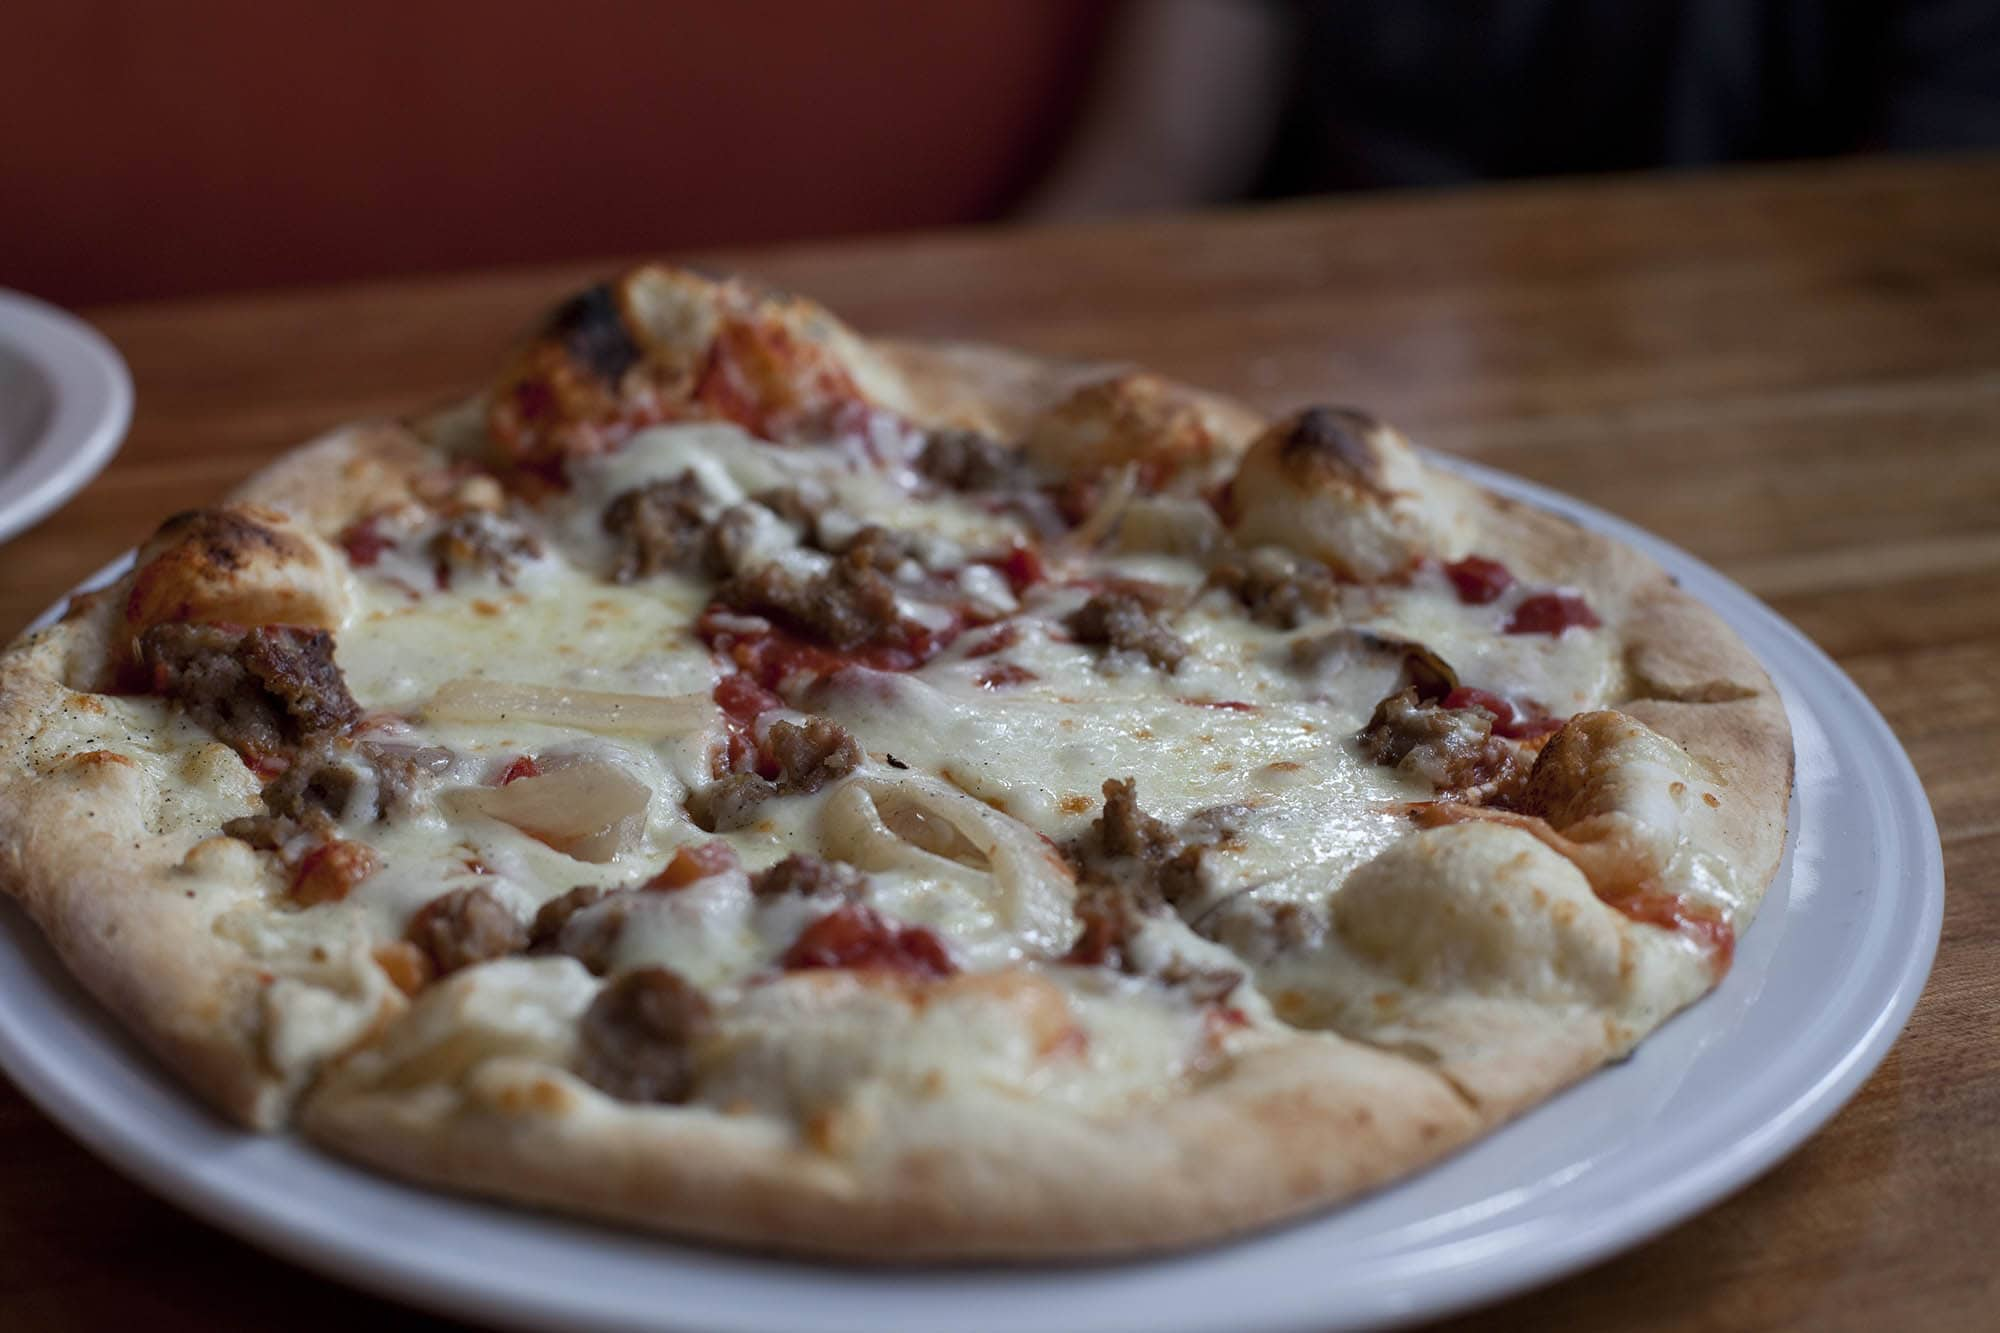 Sausage pizza from Frasca